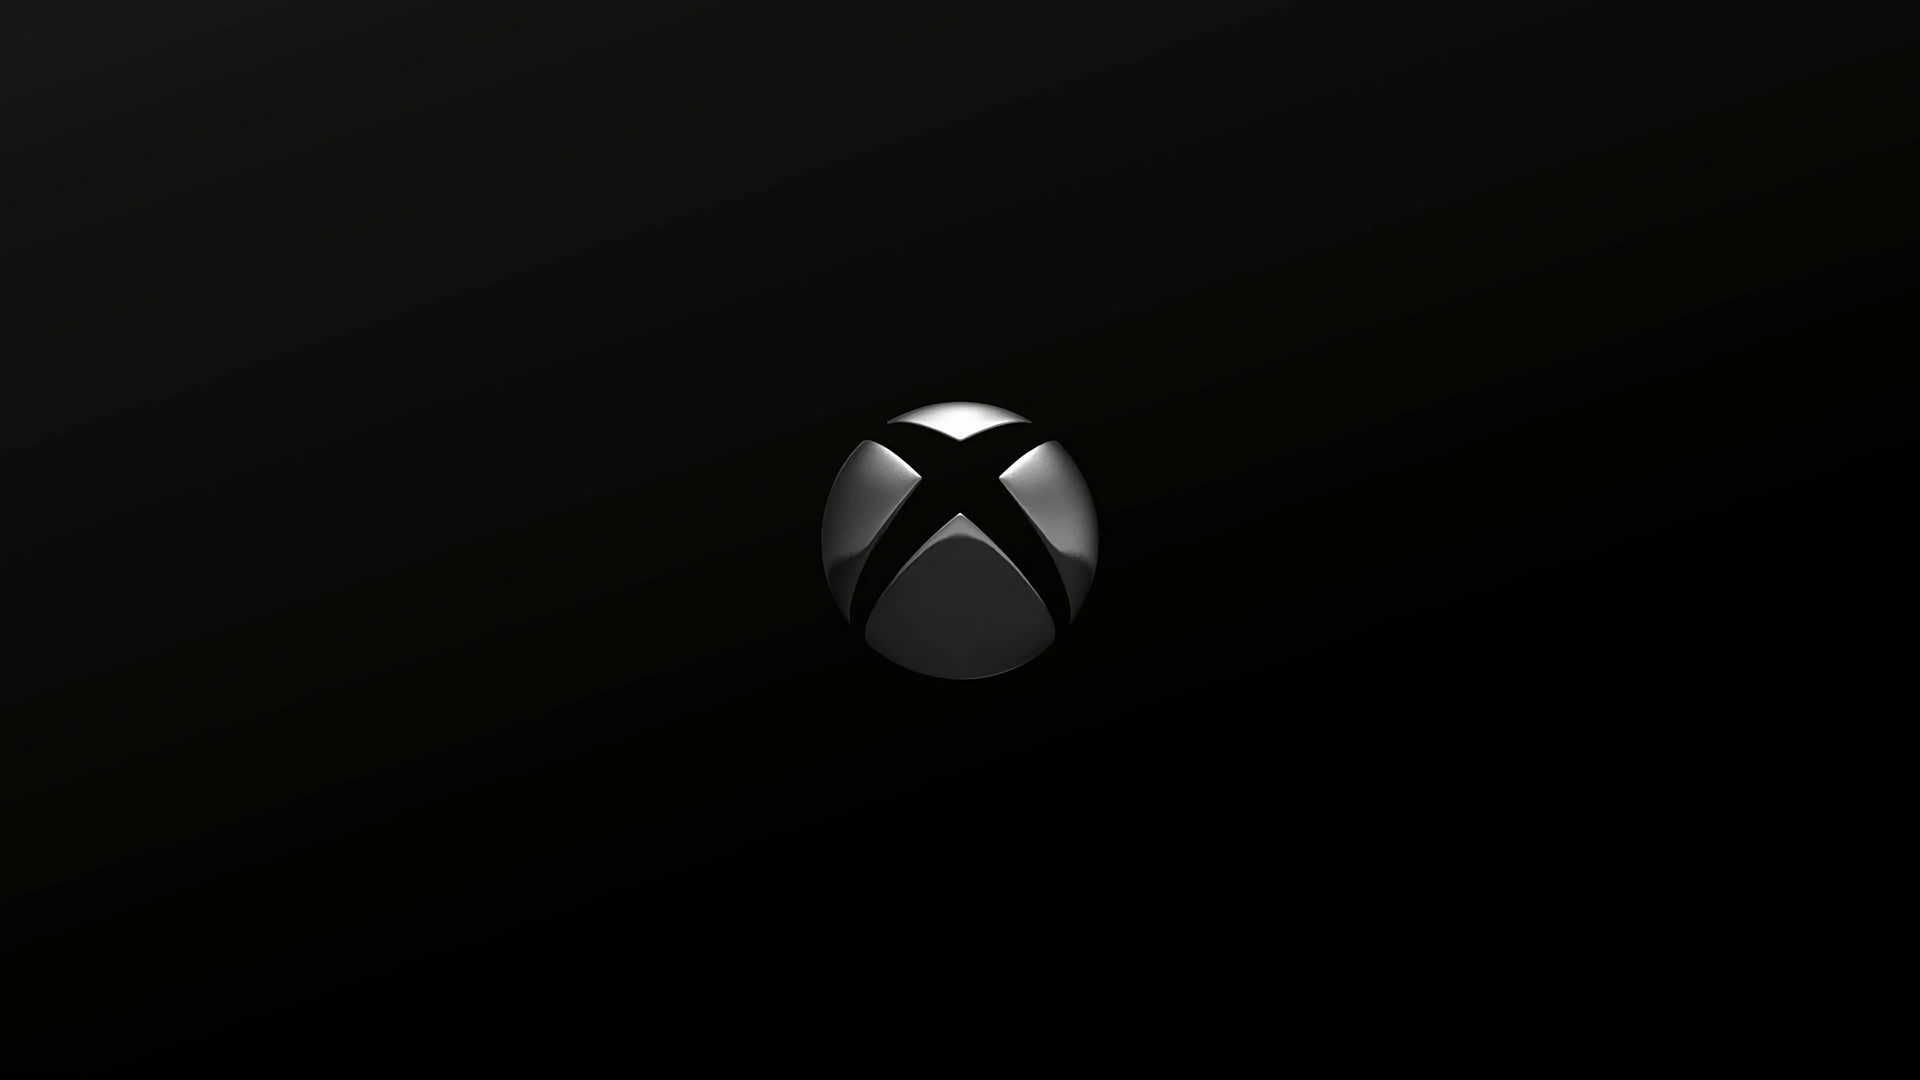 Xbox wallpaper 09 1920x1080 - Xbox one wallpaper 1920x1080 ...